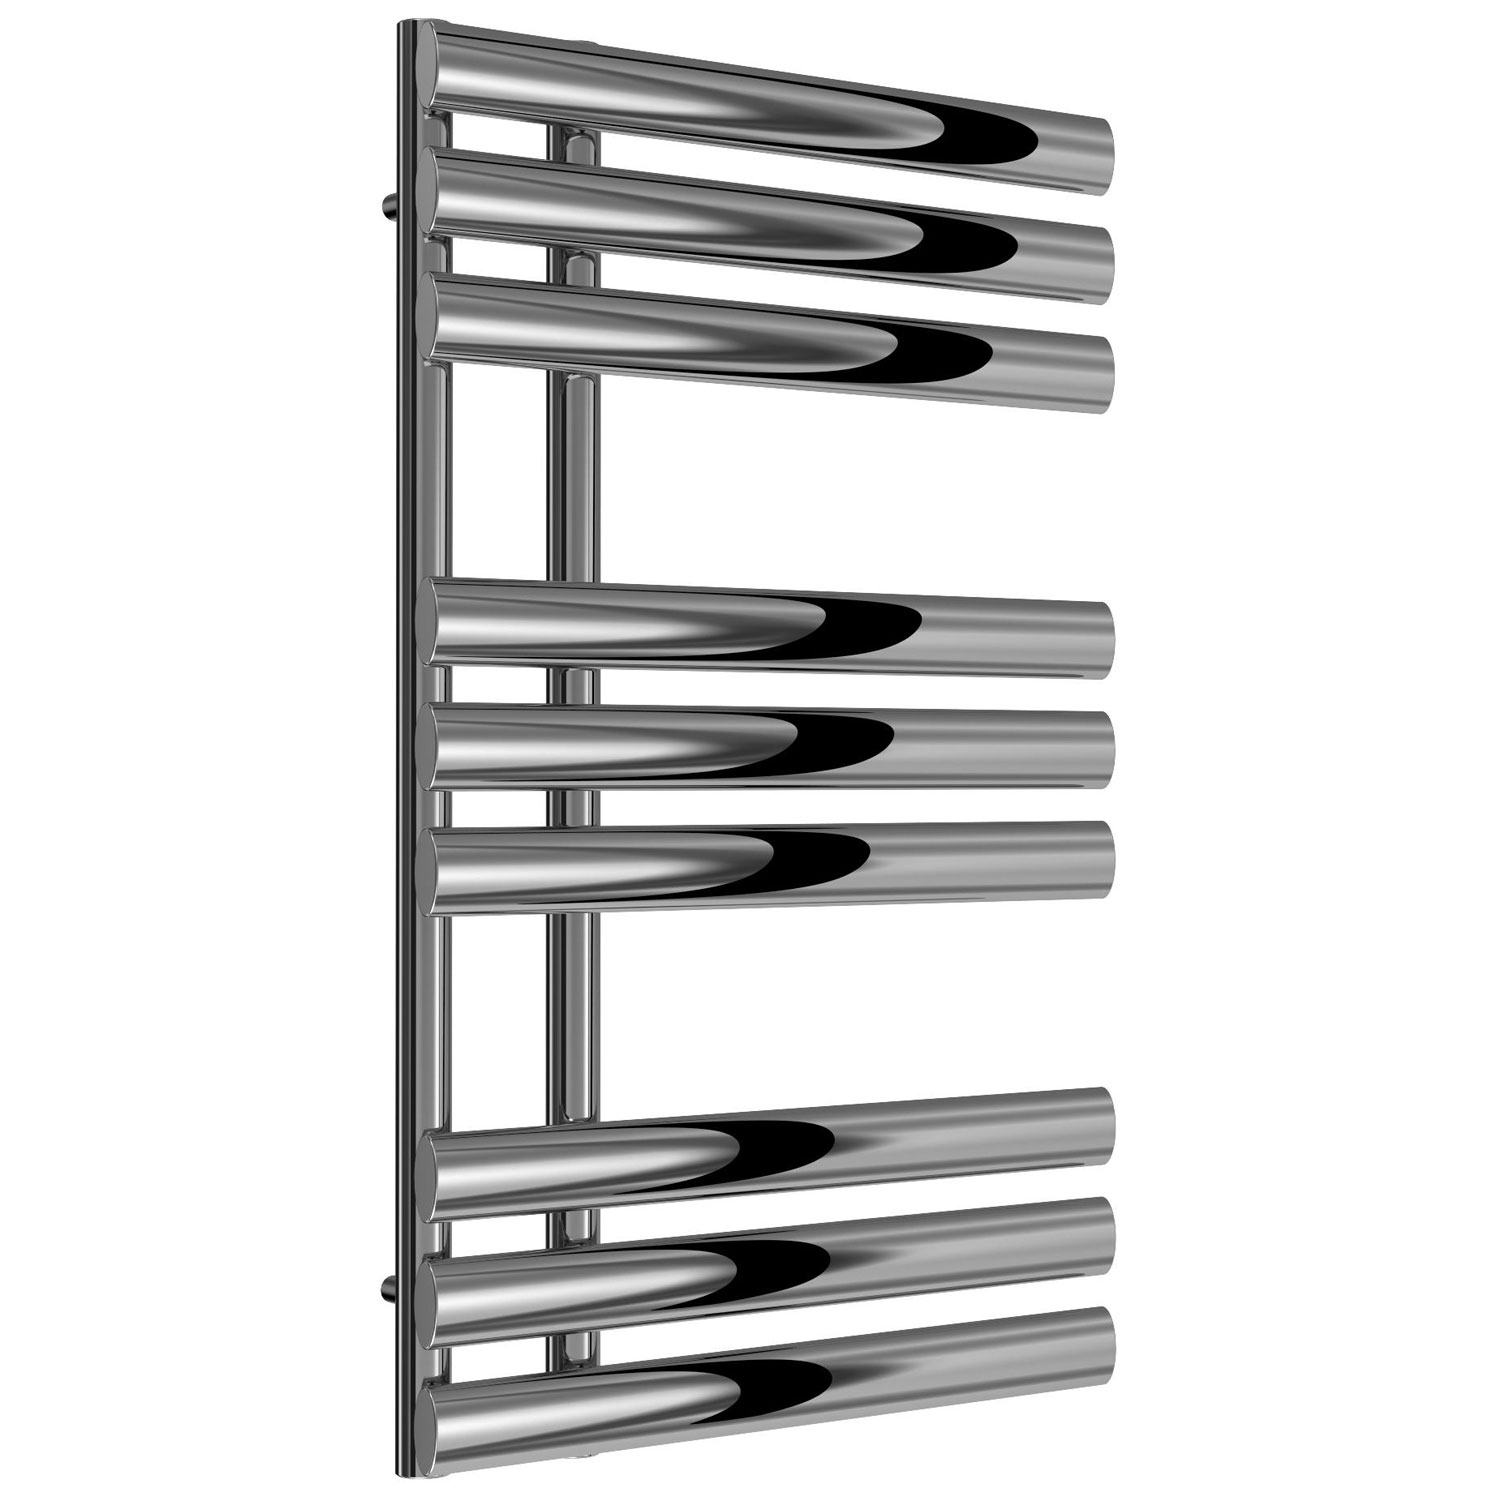 Reina Chisa Designer Heated Towel Rail 820mm H x 500mm W Chrome-0